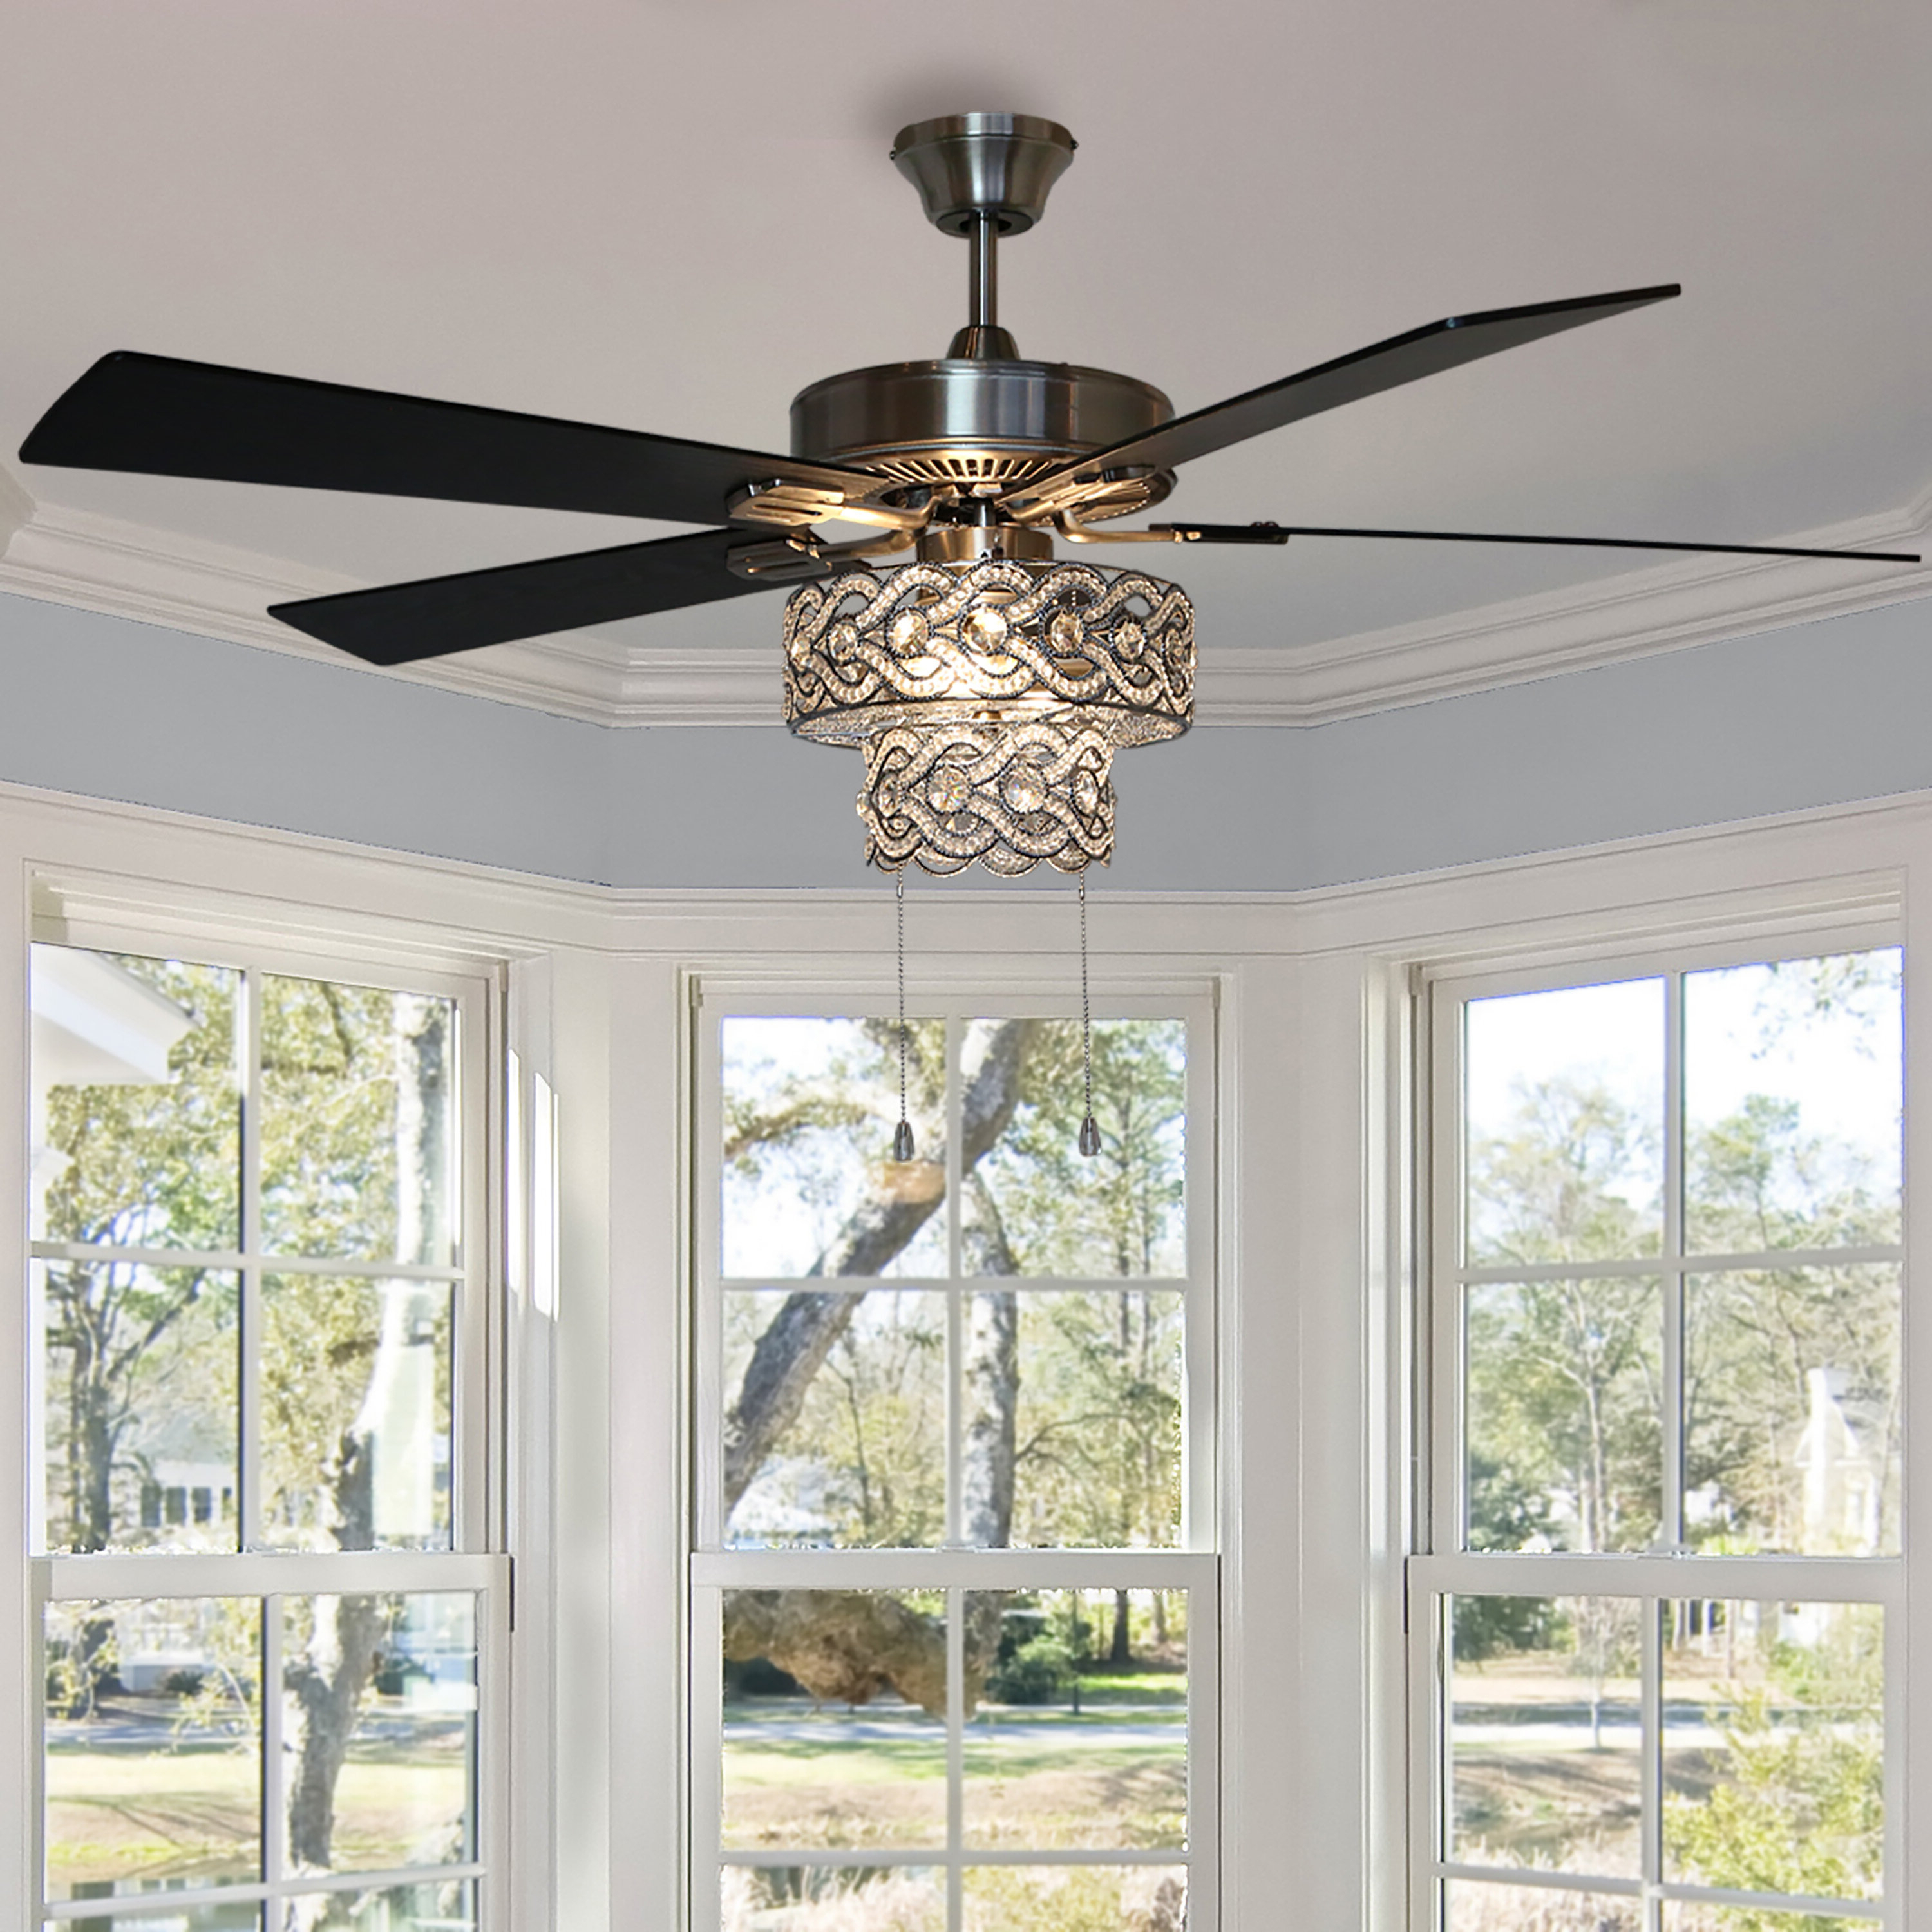 """Well Known Clybourn 5 Blade Ceiling Fans With 52"""" Nowthen Beaded Braid 5 Blade Ceiling Fan With Remote, Light Kit Included (View 17 of 20)"""